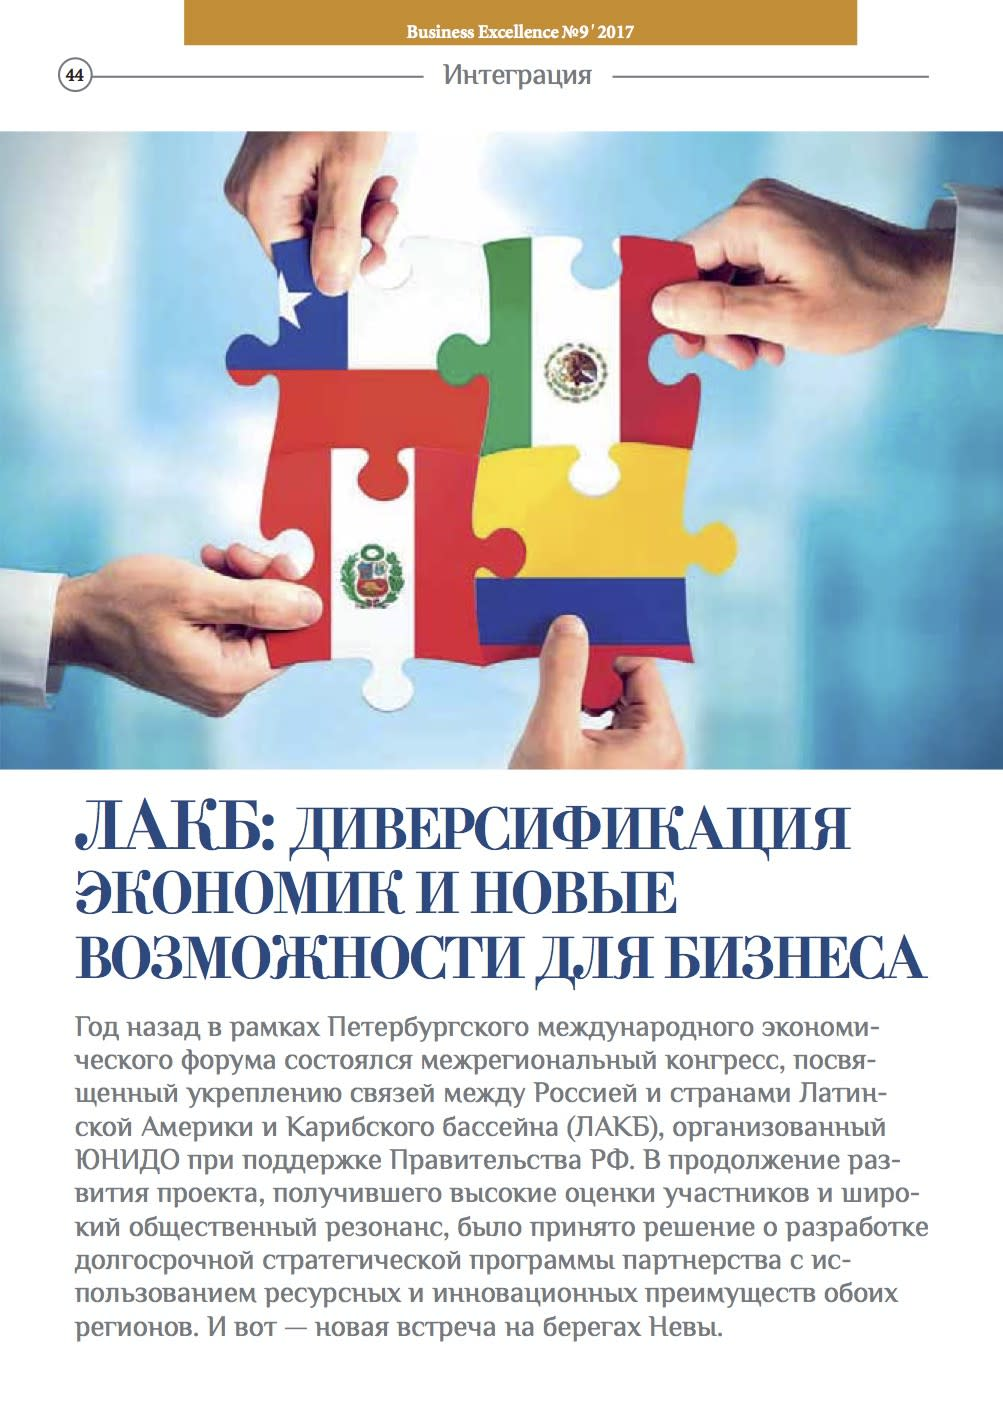 Publication in  «Business Excellence»